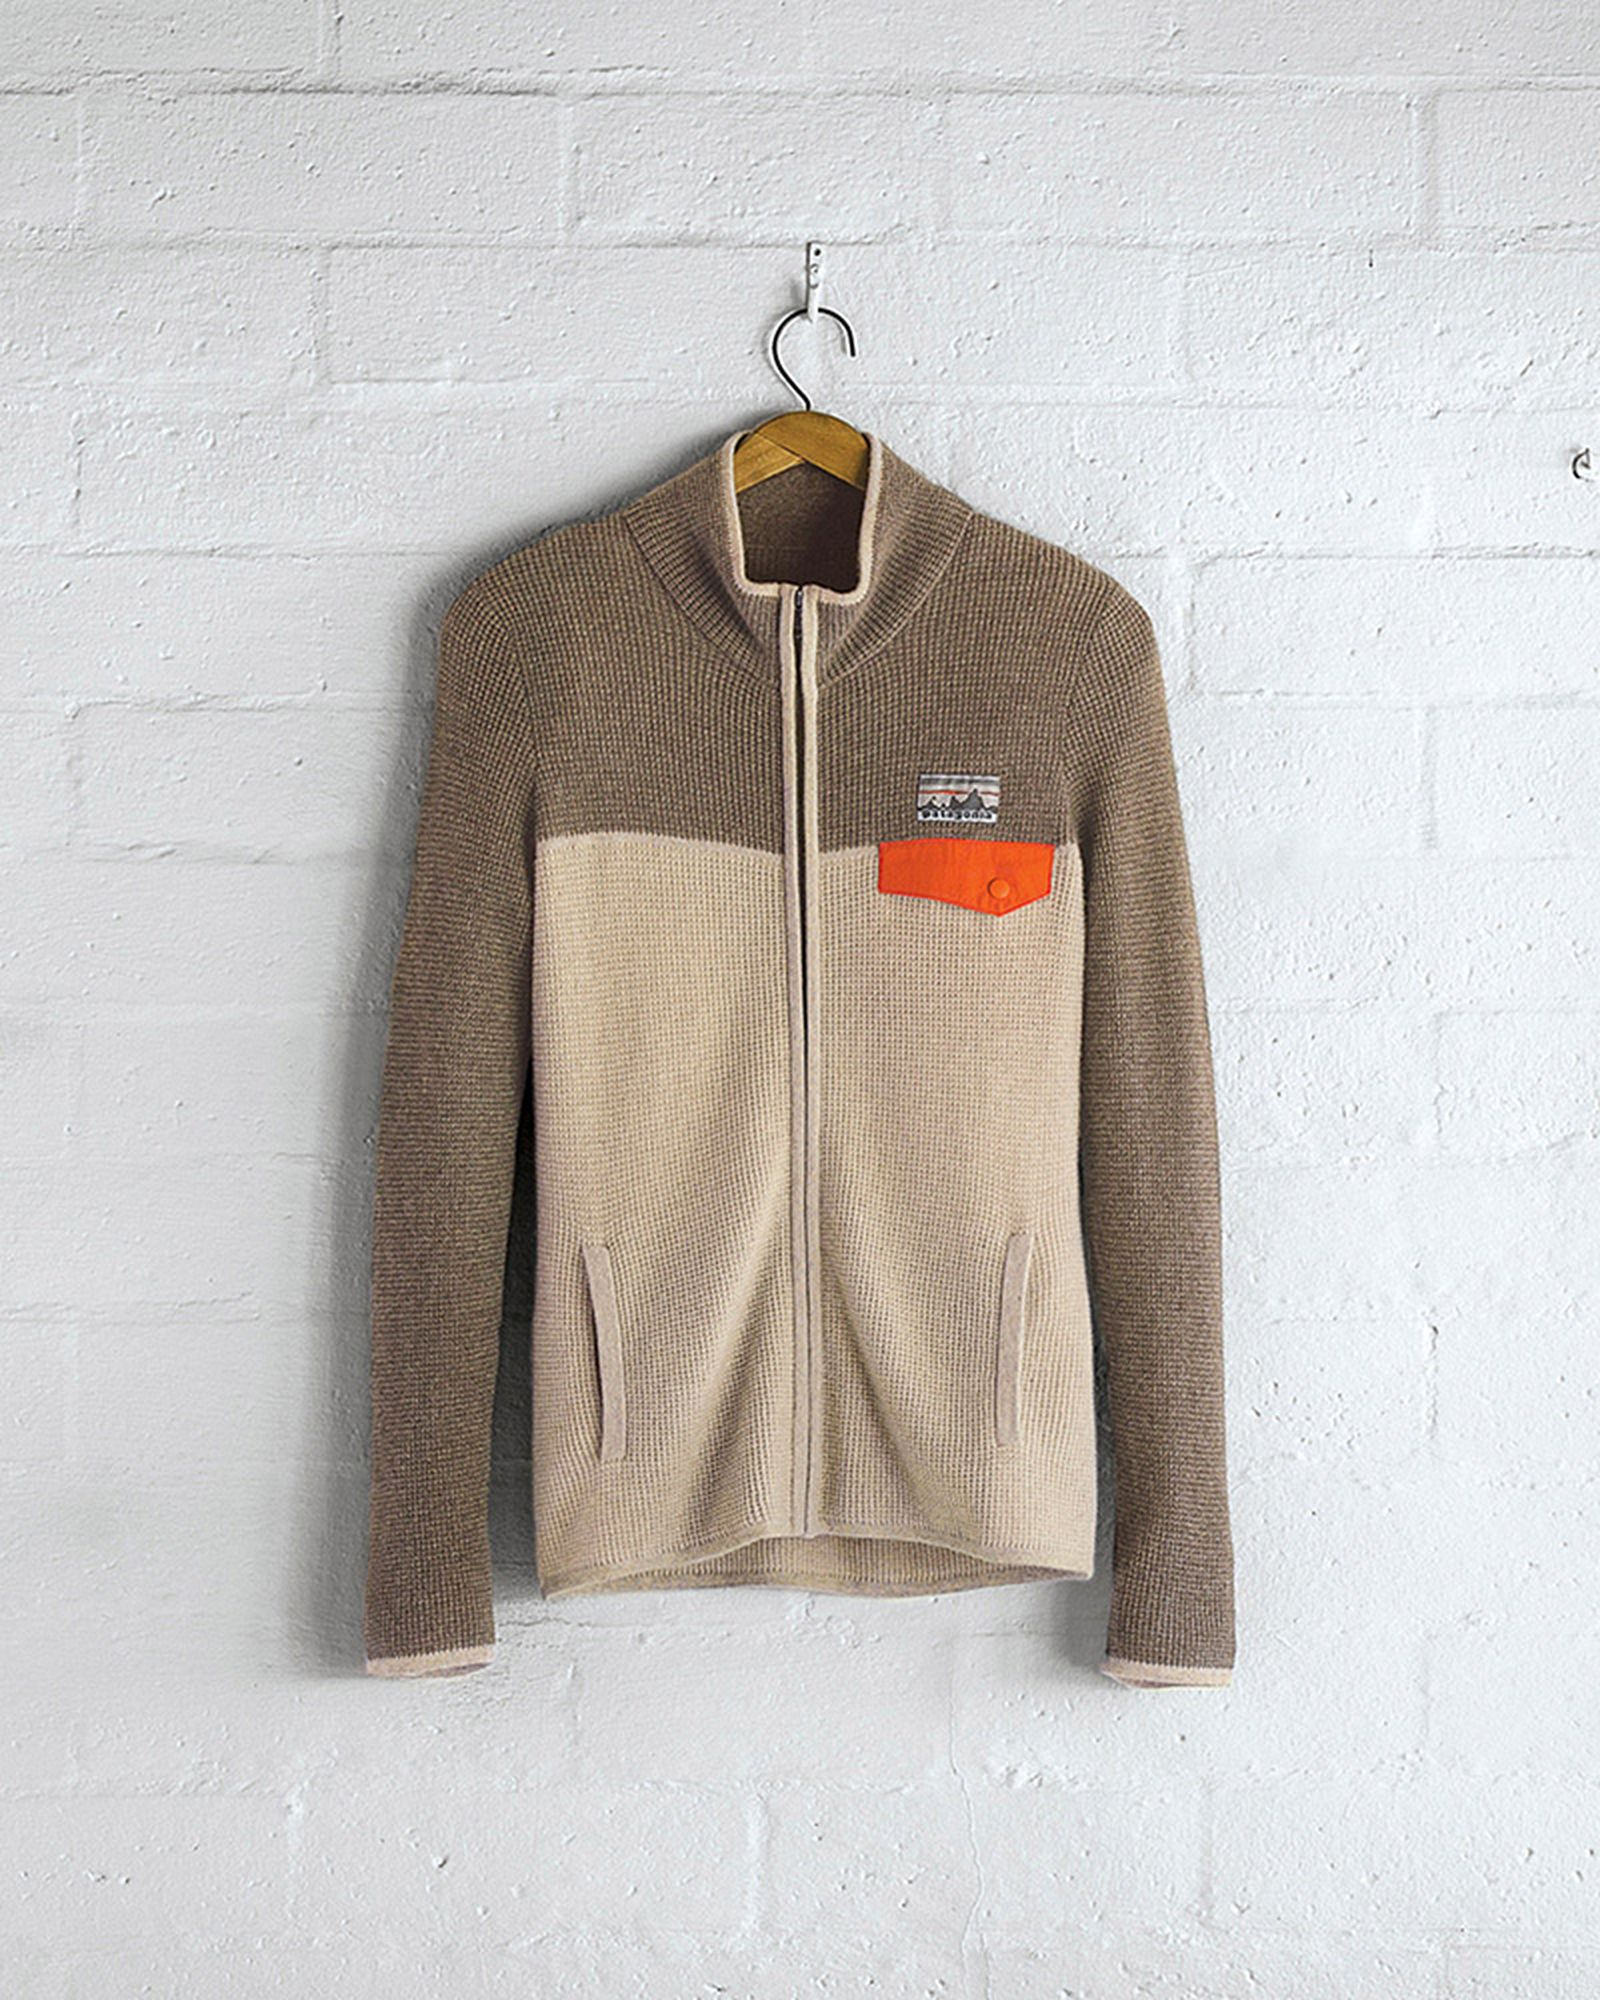 best sustainable fashion brands patagonia Armedangels Jungmaven Knowledge Cotton Apparel